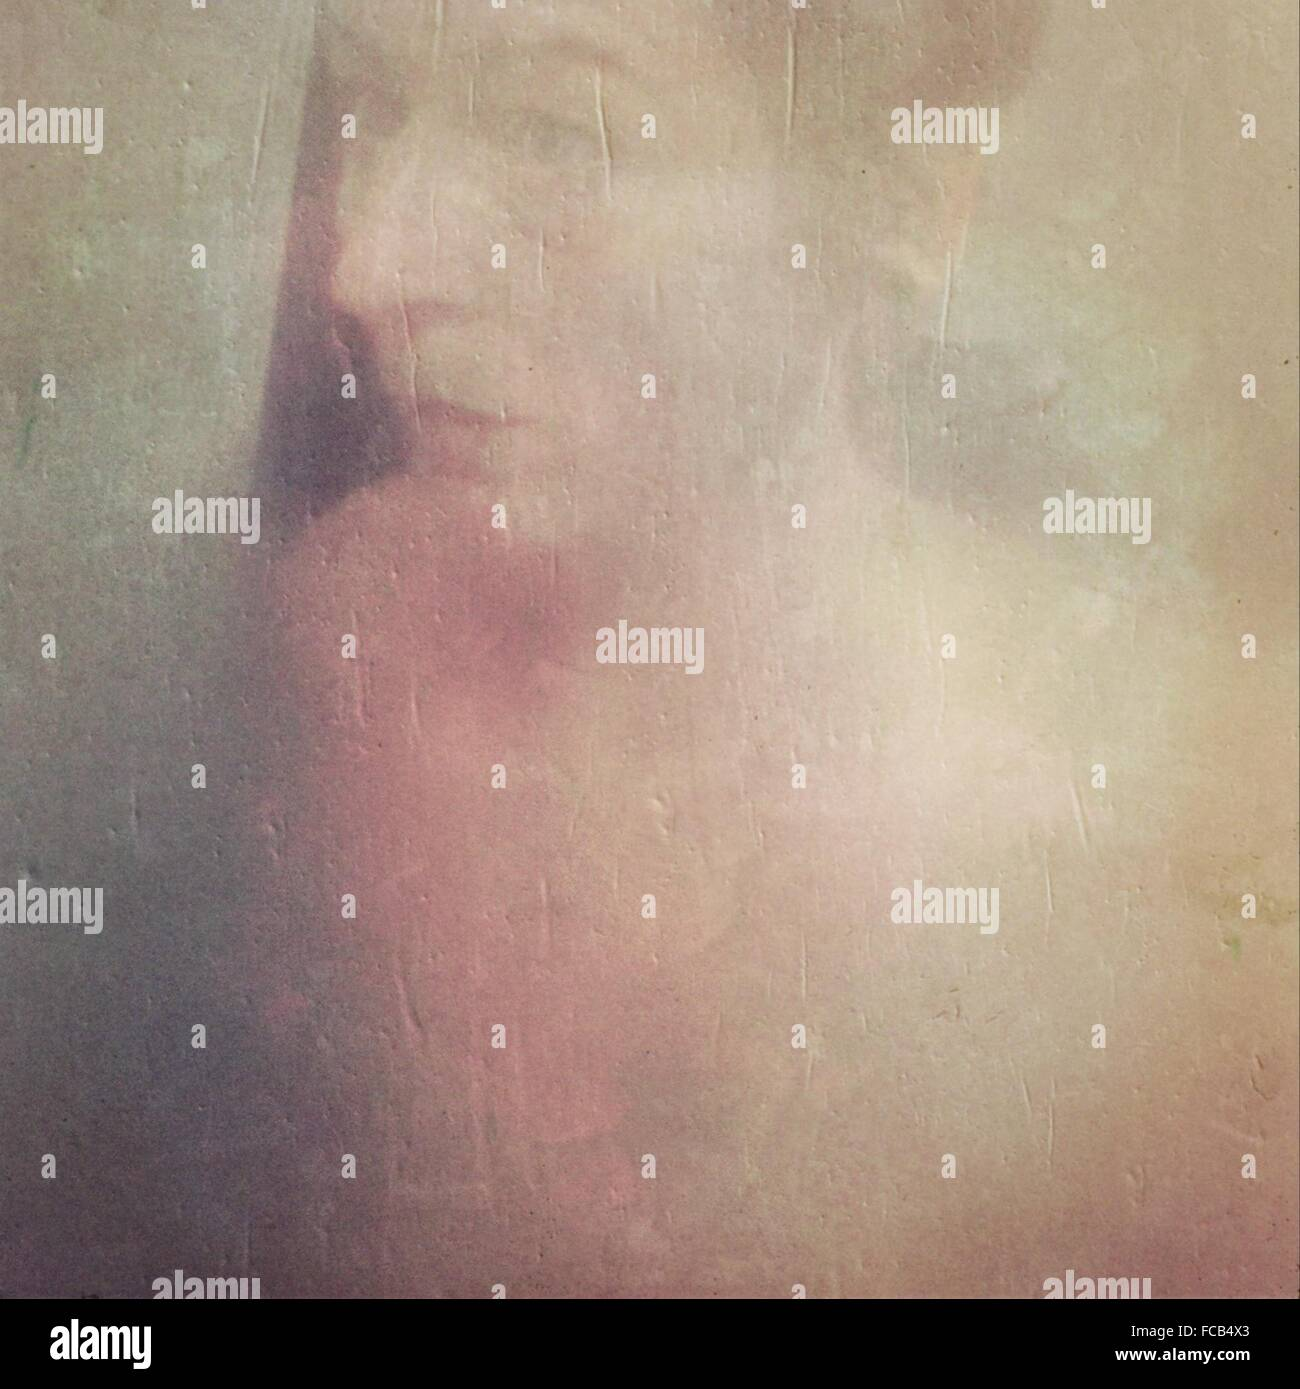 Portrait de l'homme vu à travers le verre de douche Photo Stock